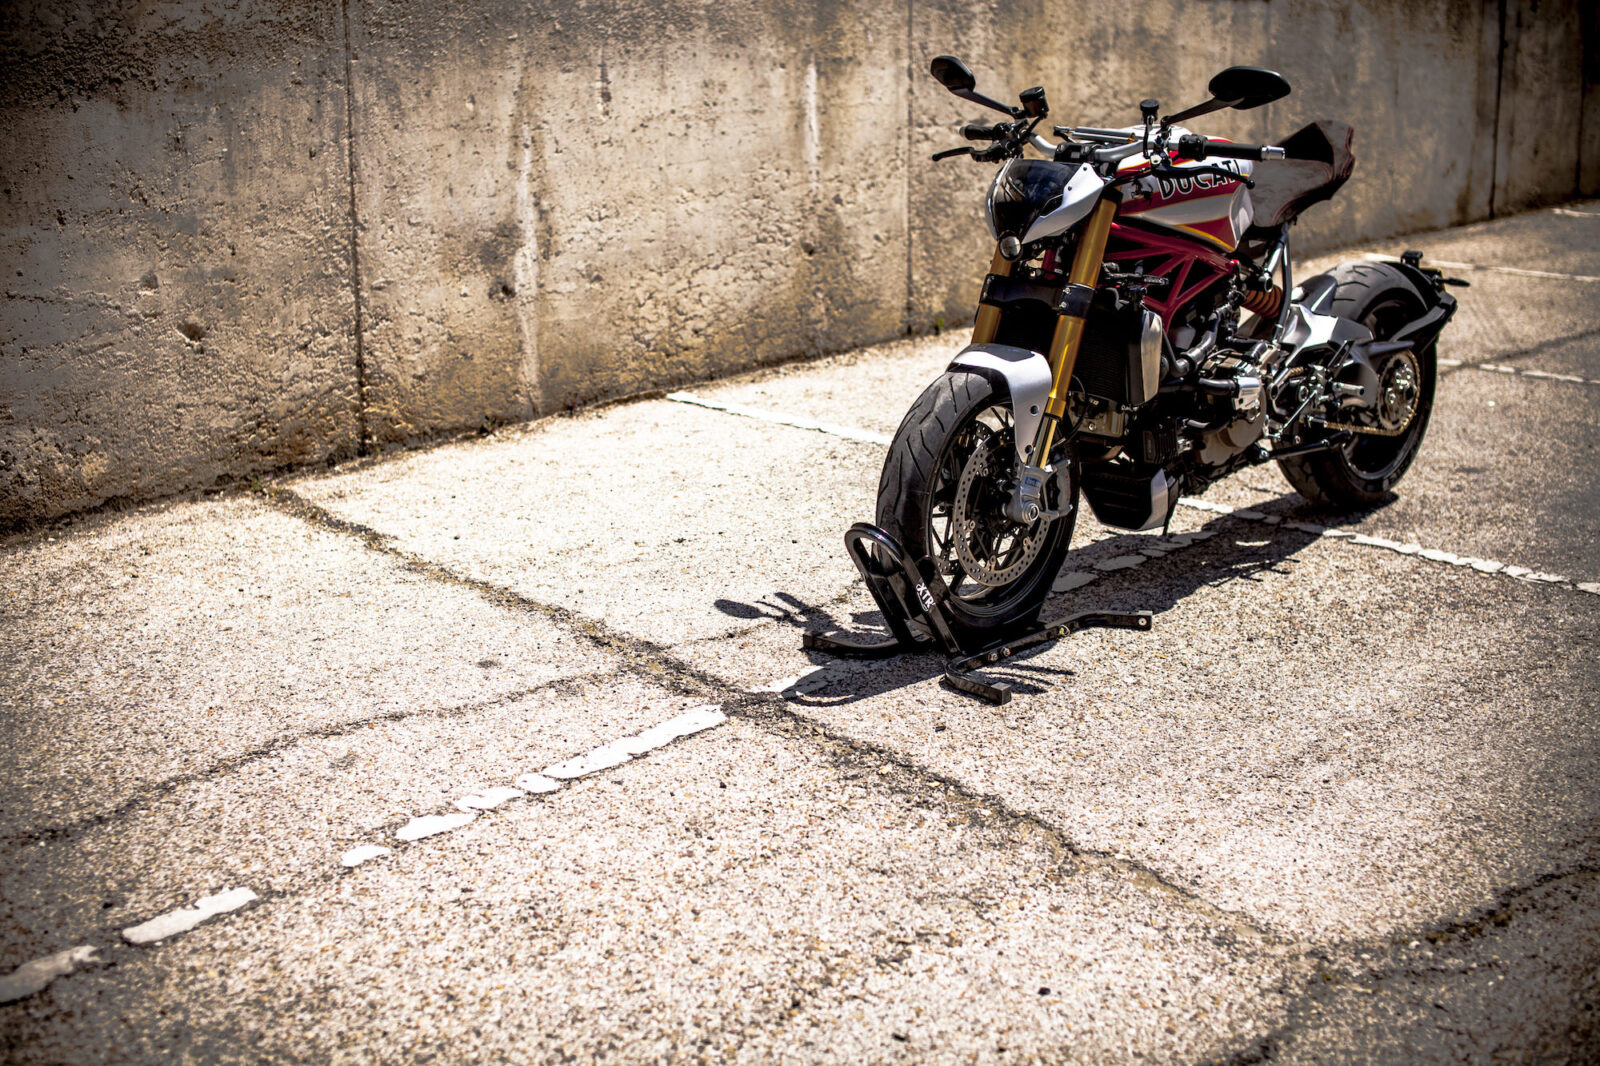 Ducati Monster Motorcycle 7 1600x1066 - XTR Pepo Ducati Monster 1200 S